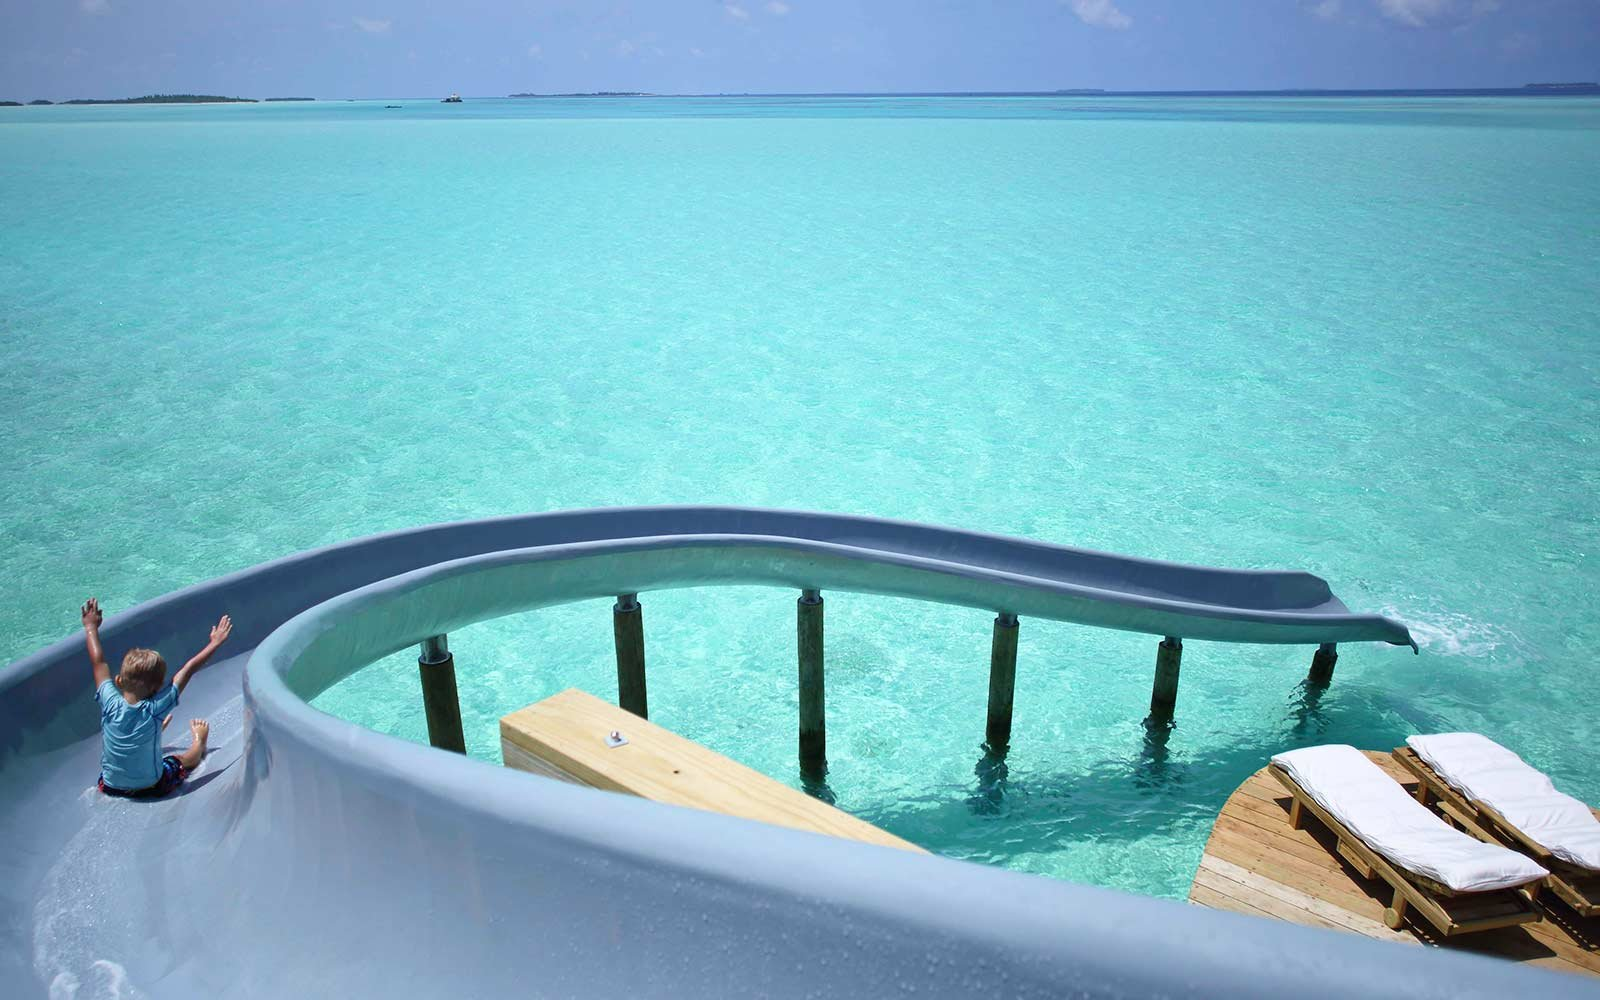 Insane Waterslide Lands In Gorgeous Turquoise